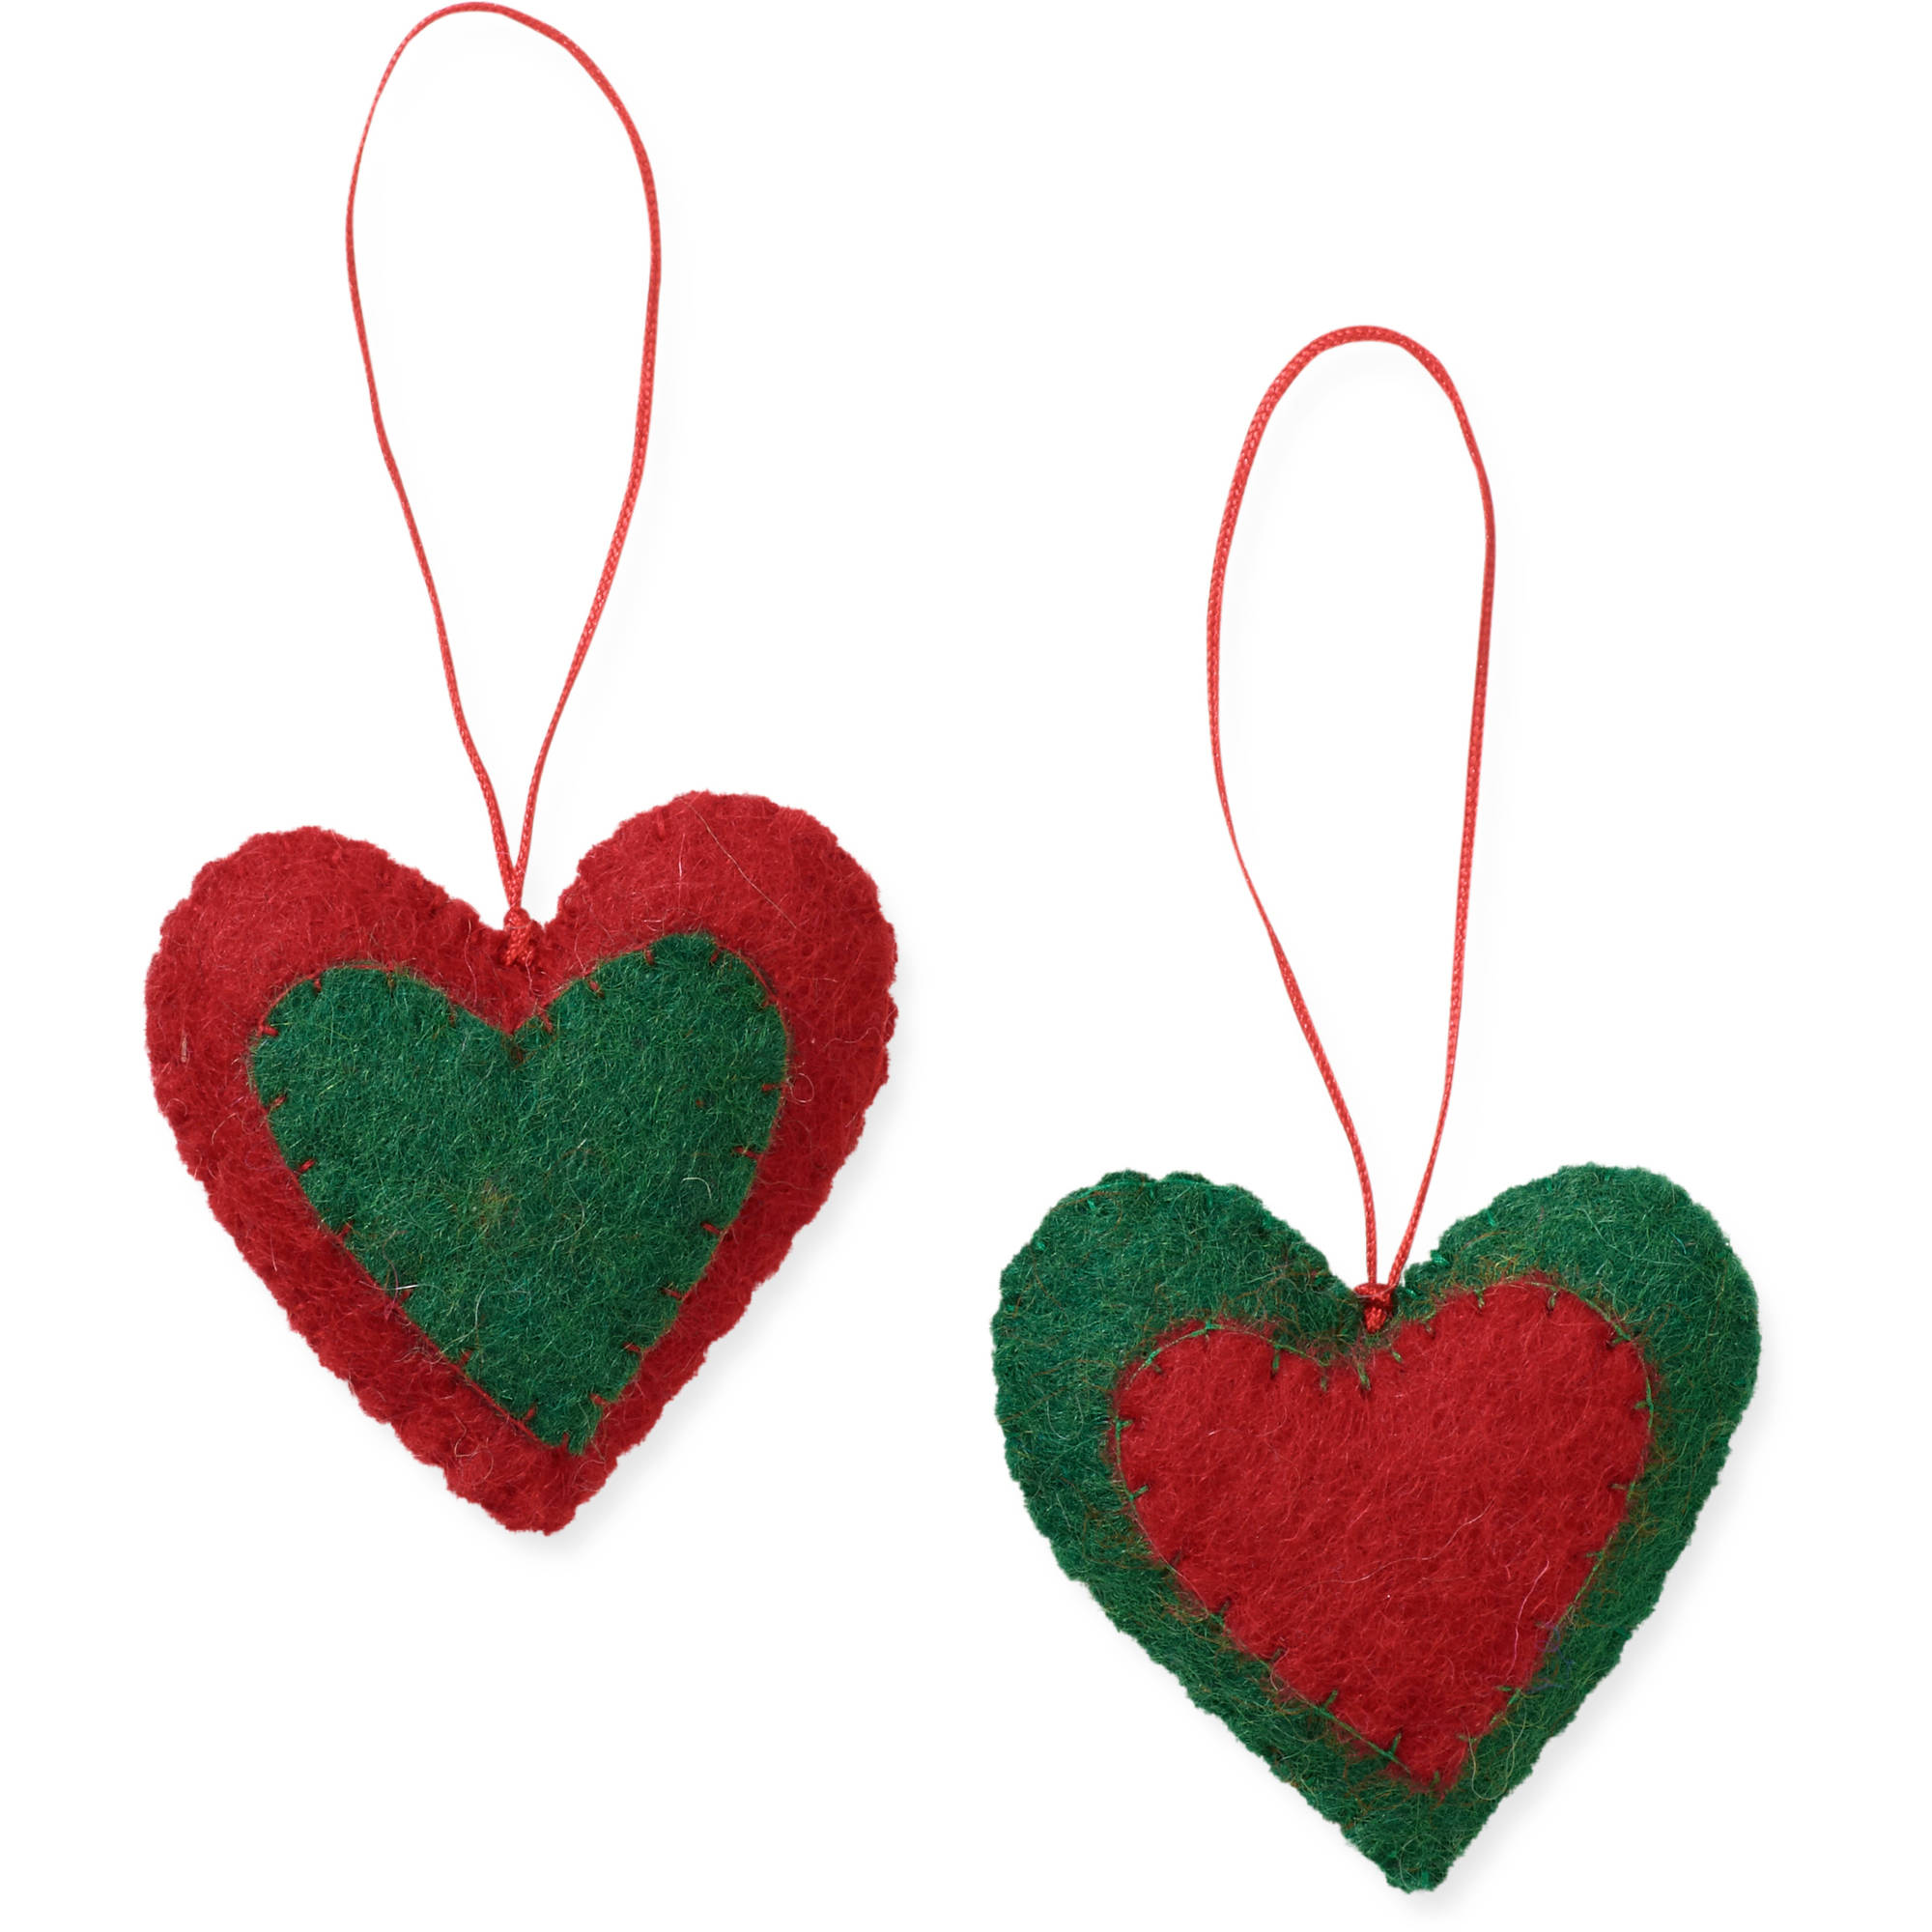 2-Piece Heart Ornament Set by Friends Handicrafts for Global Goods Partners